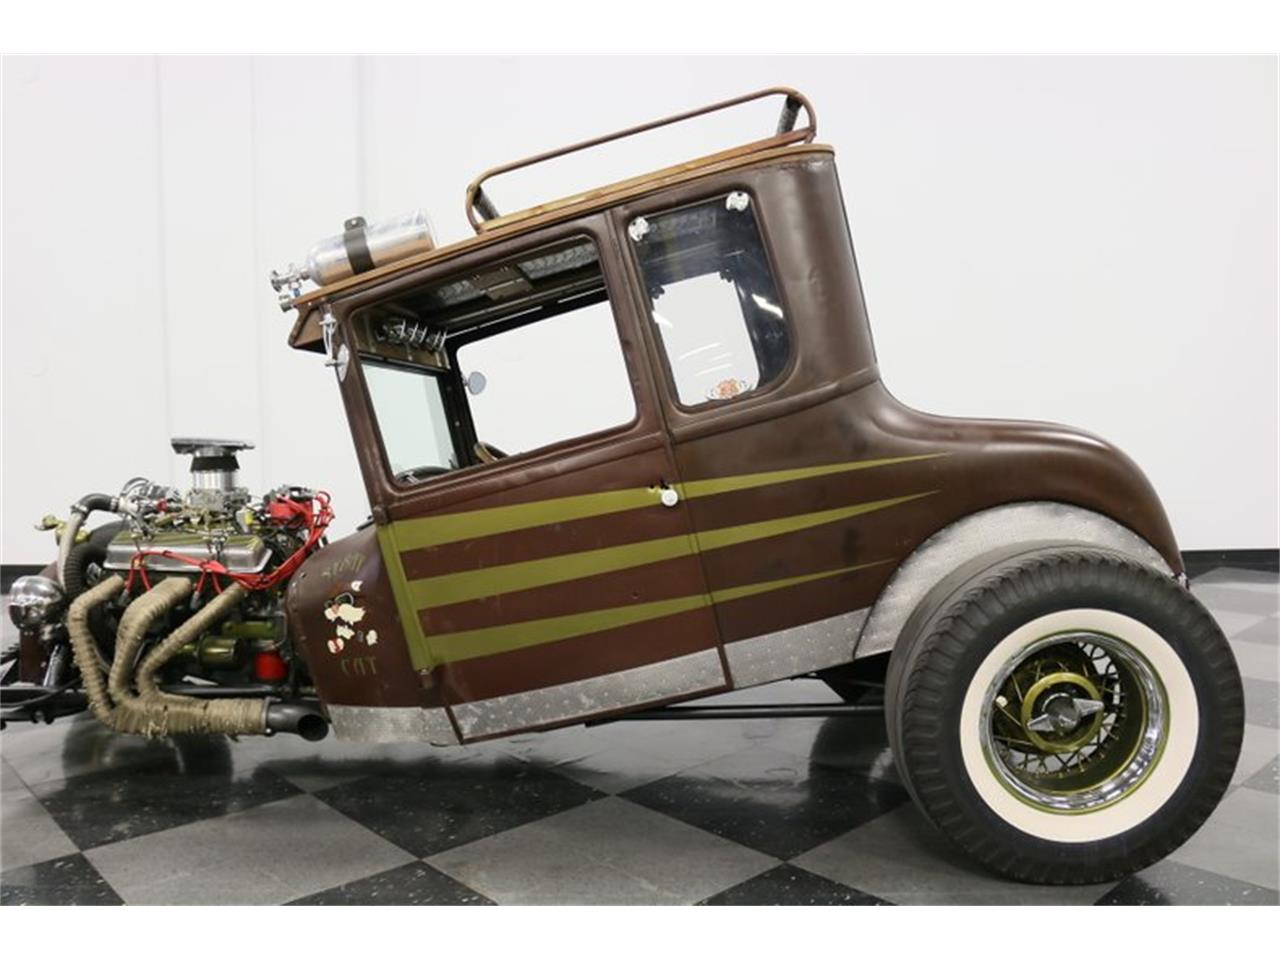 Large Picture of Classic 1927 Ford Coupe located in Ft Worth Texas - $31,995.00 Offered by Streetside Classics - Dallas / Fort Worth - Q4LA